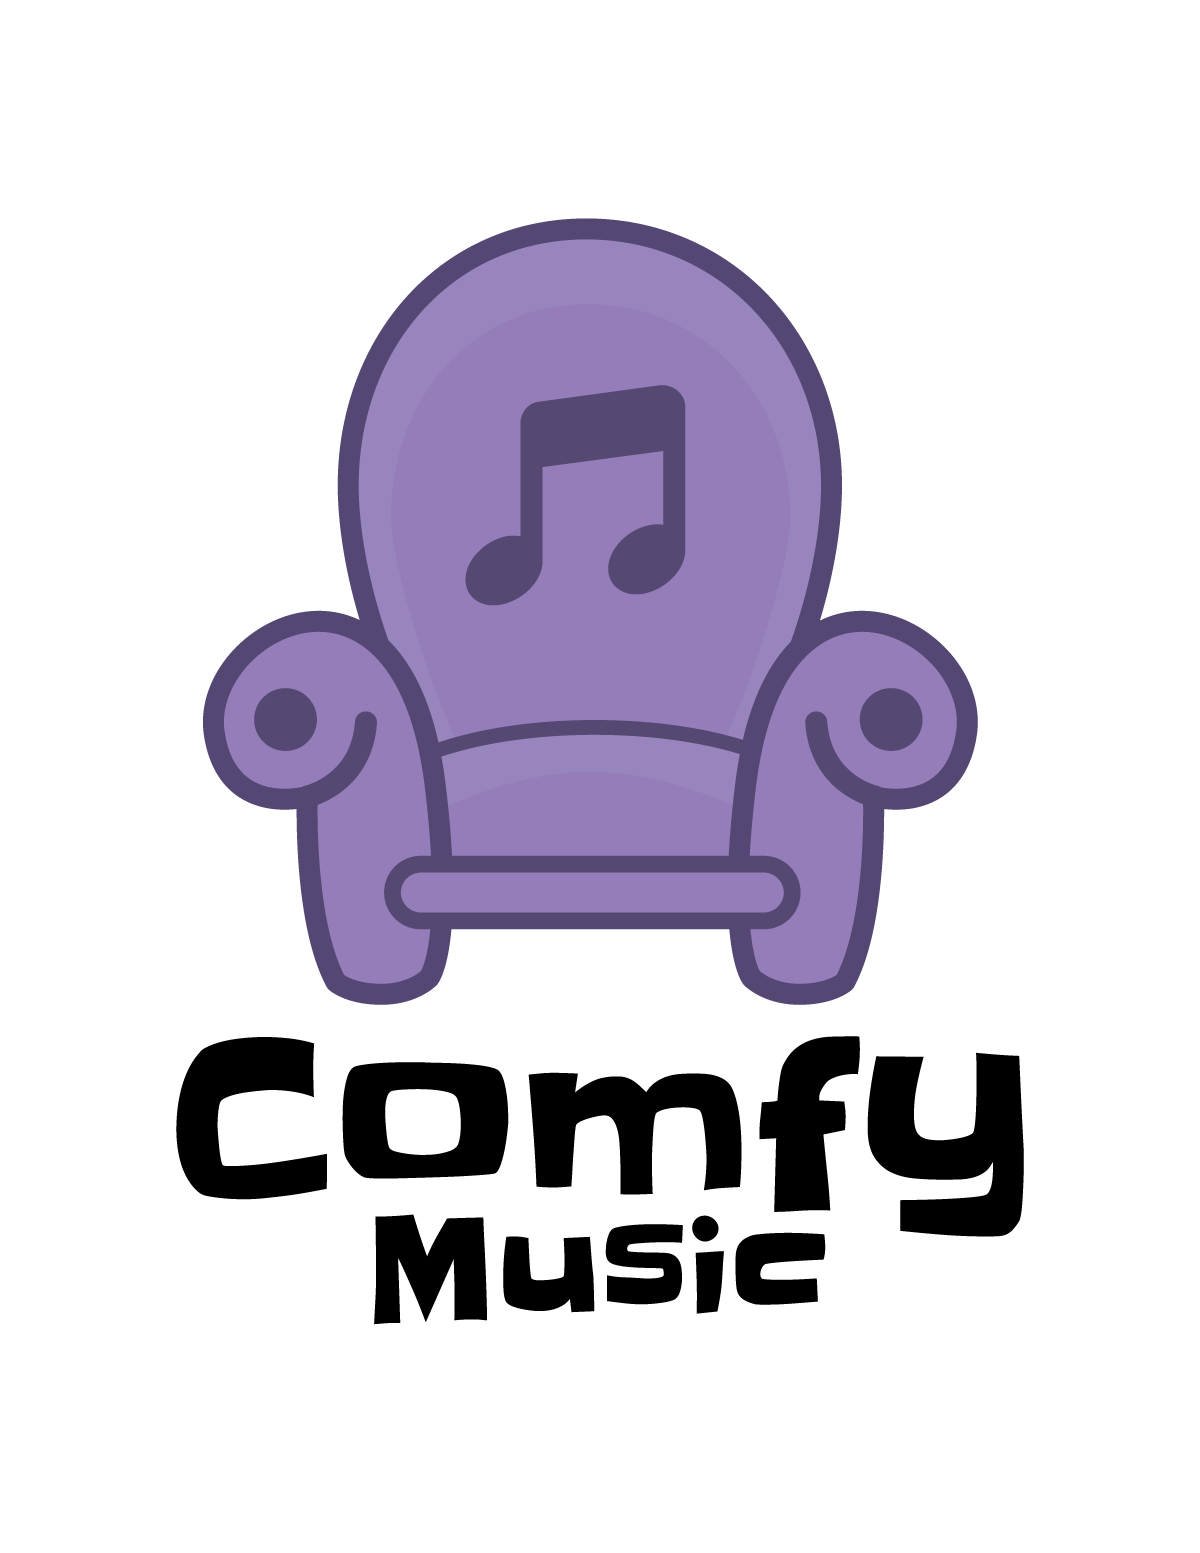 Comfy music logo color purple